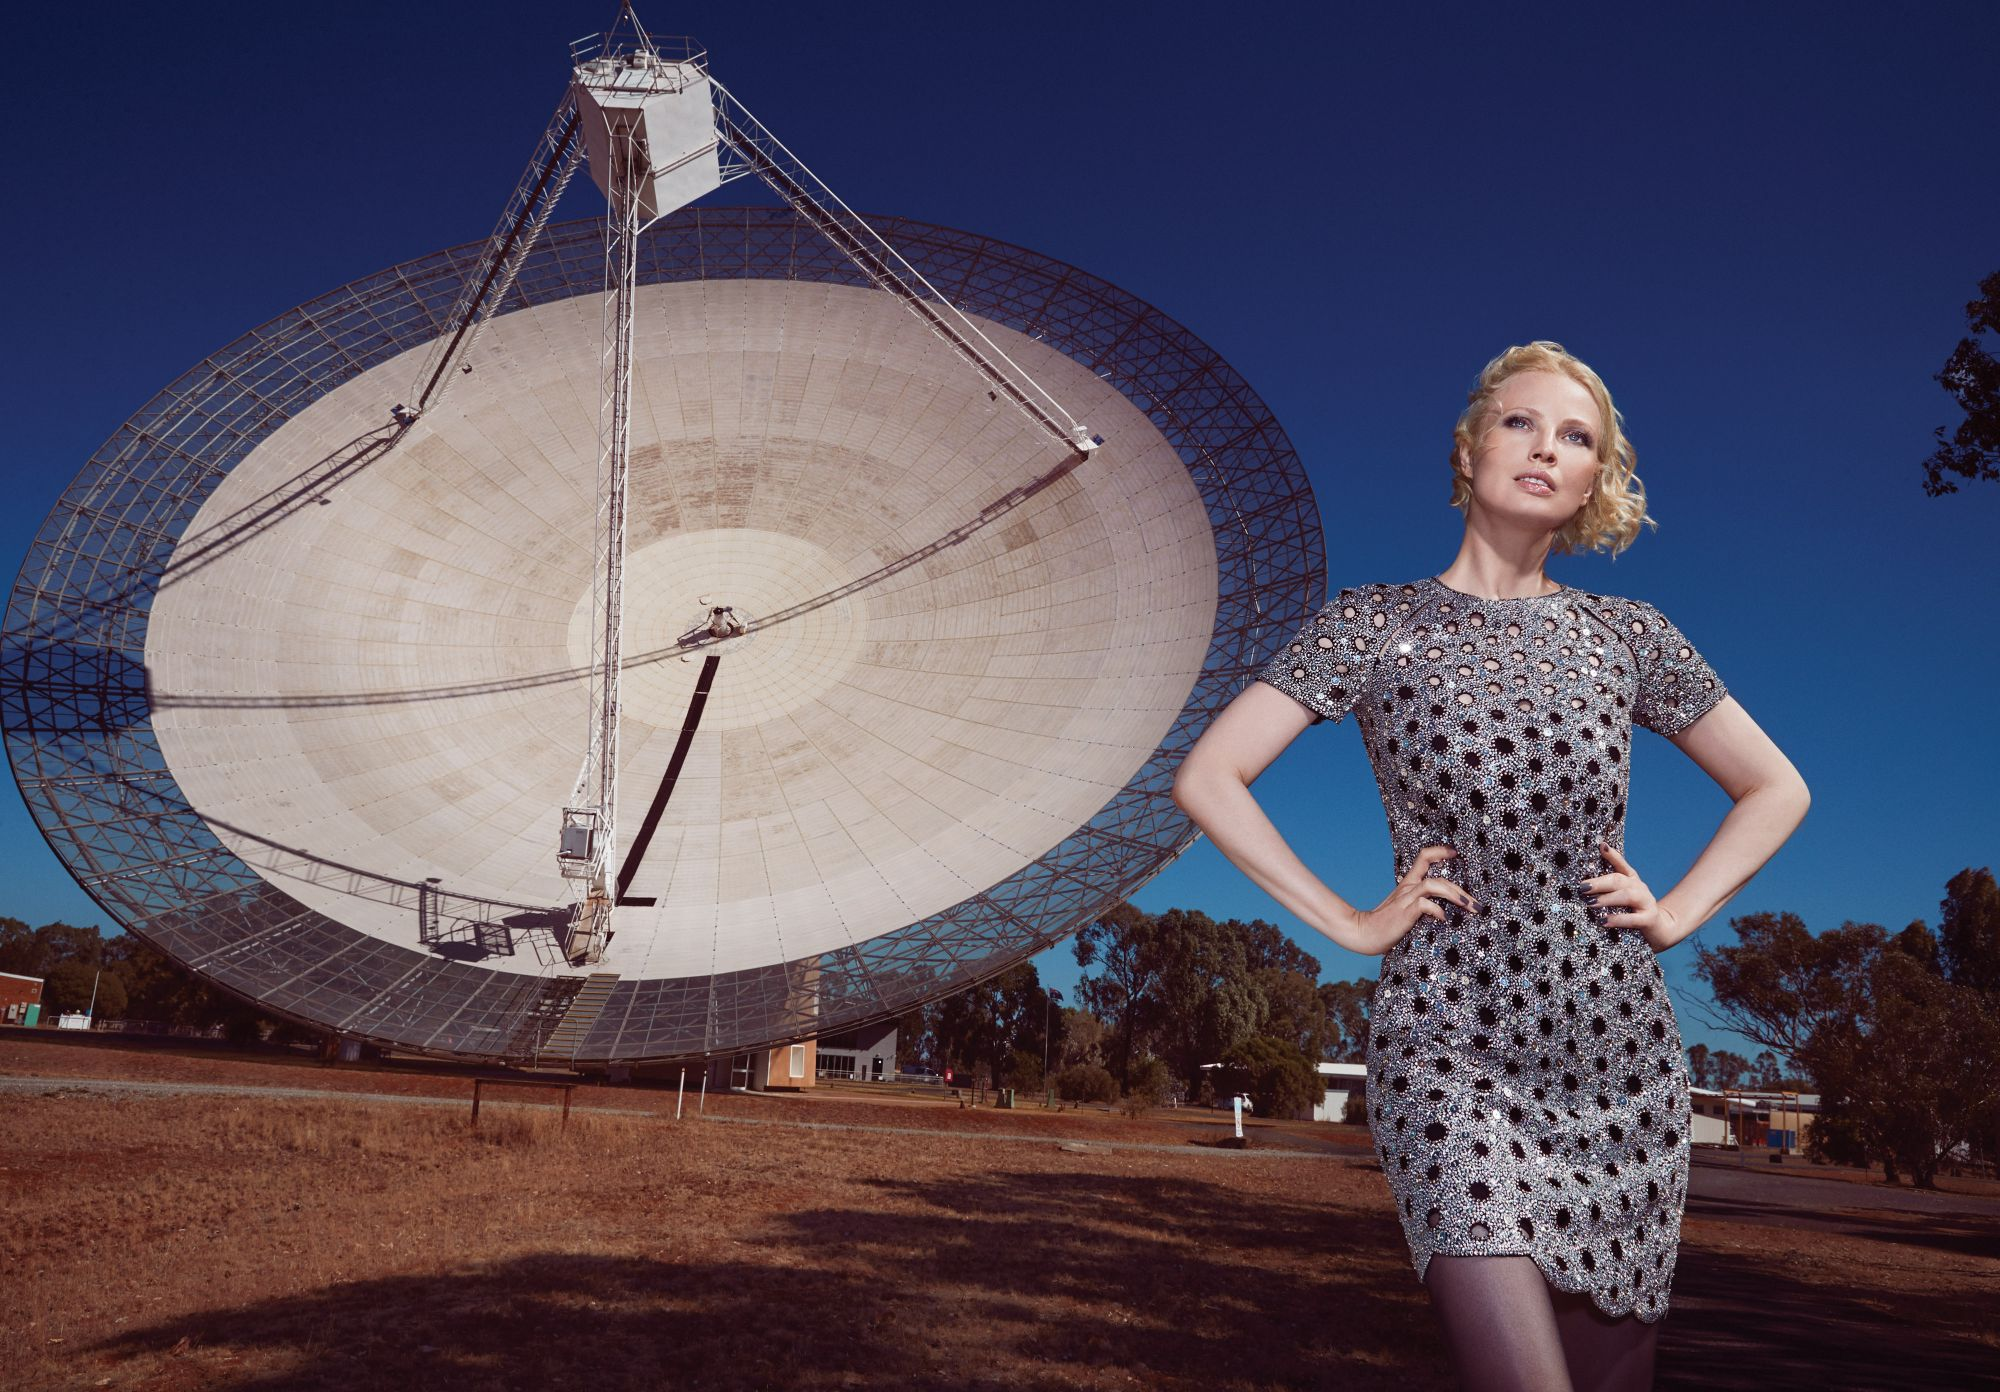 Julia Milner Visits The Parkes Observatory — Chanel Boots In Tow